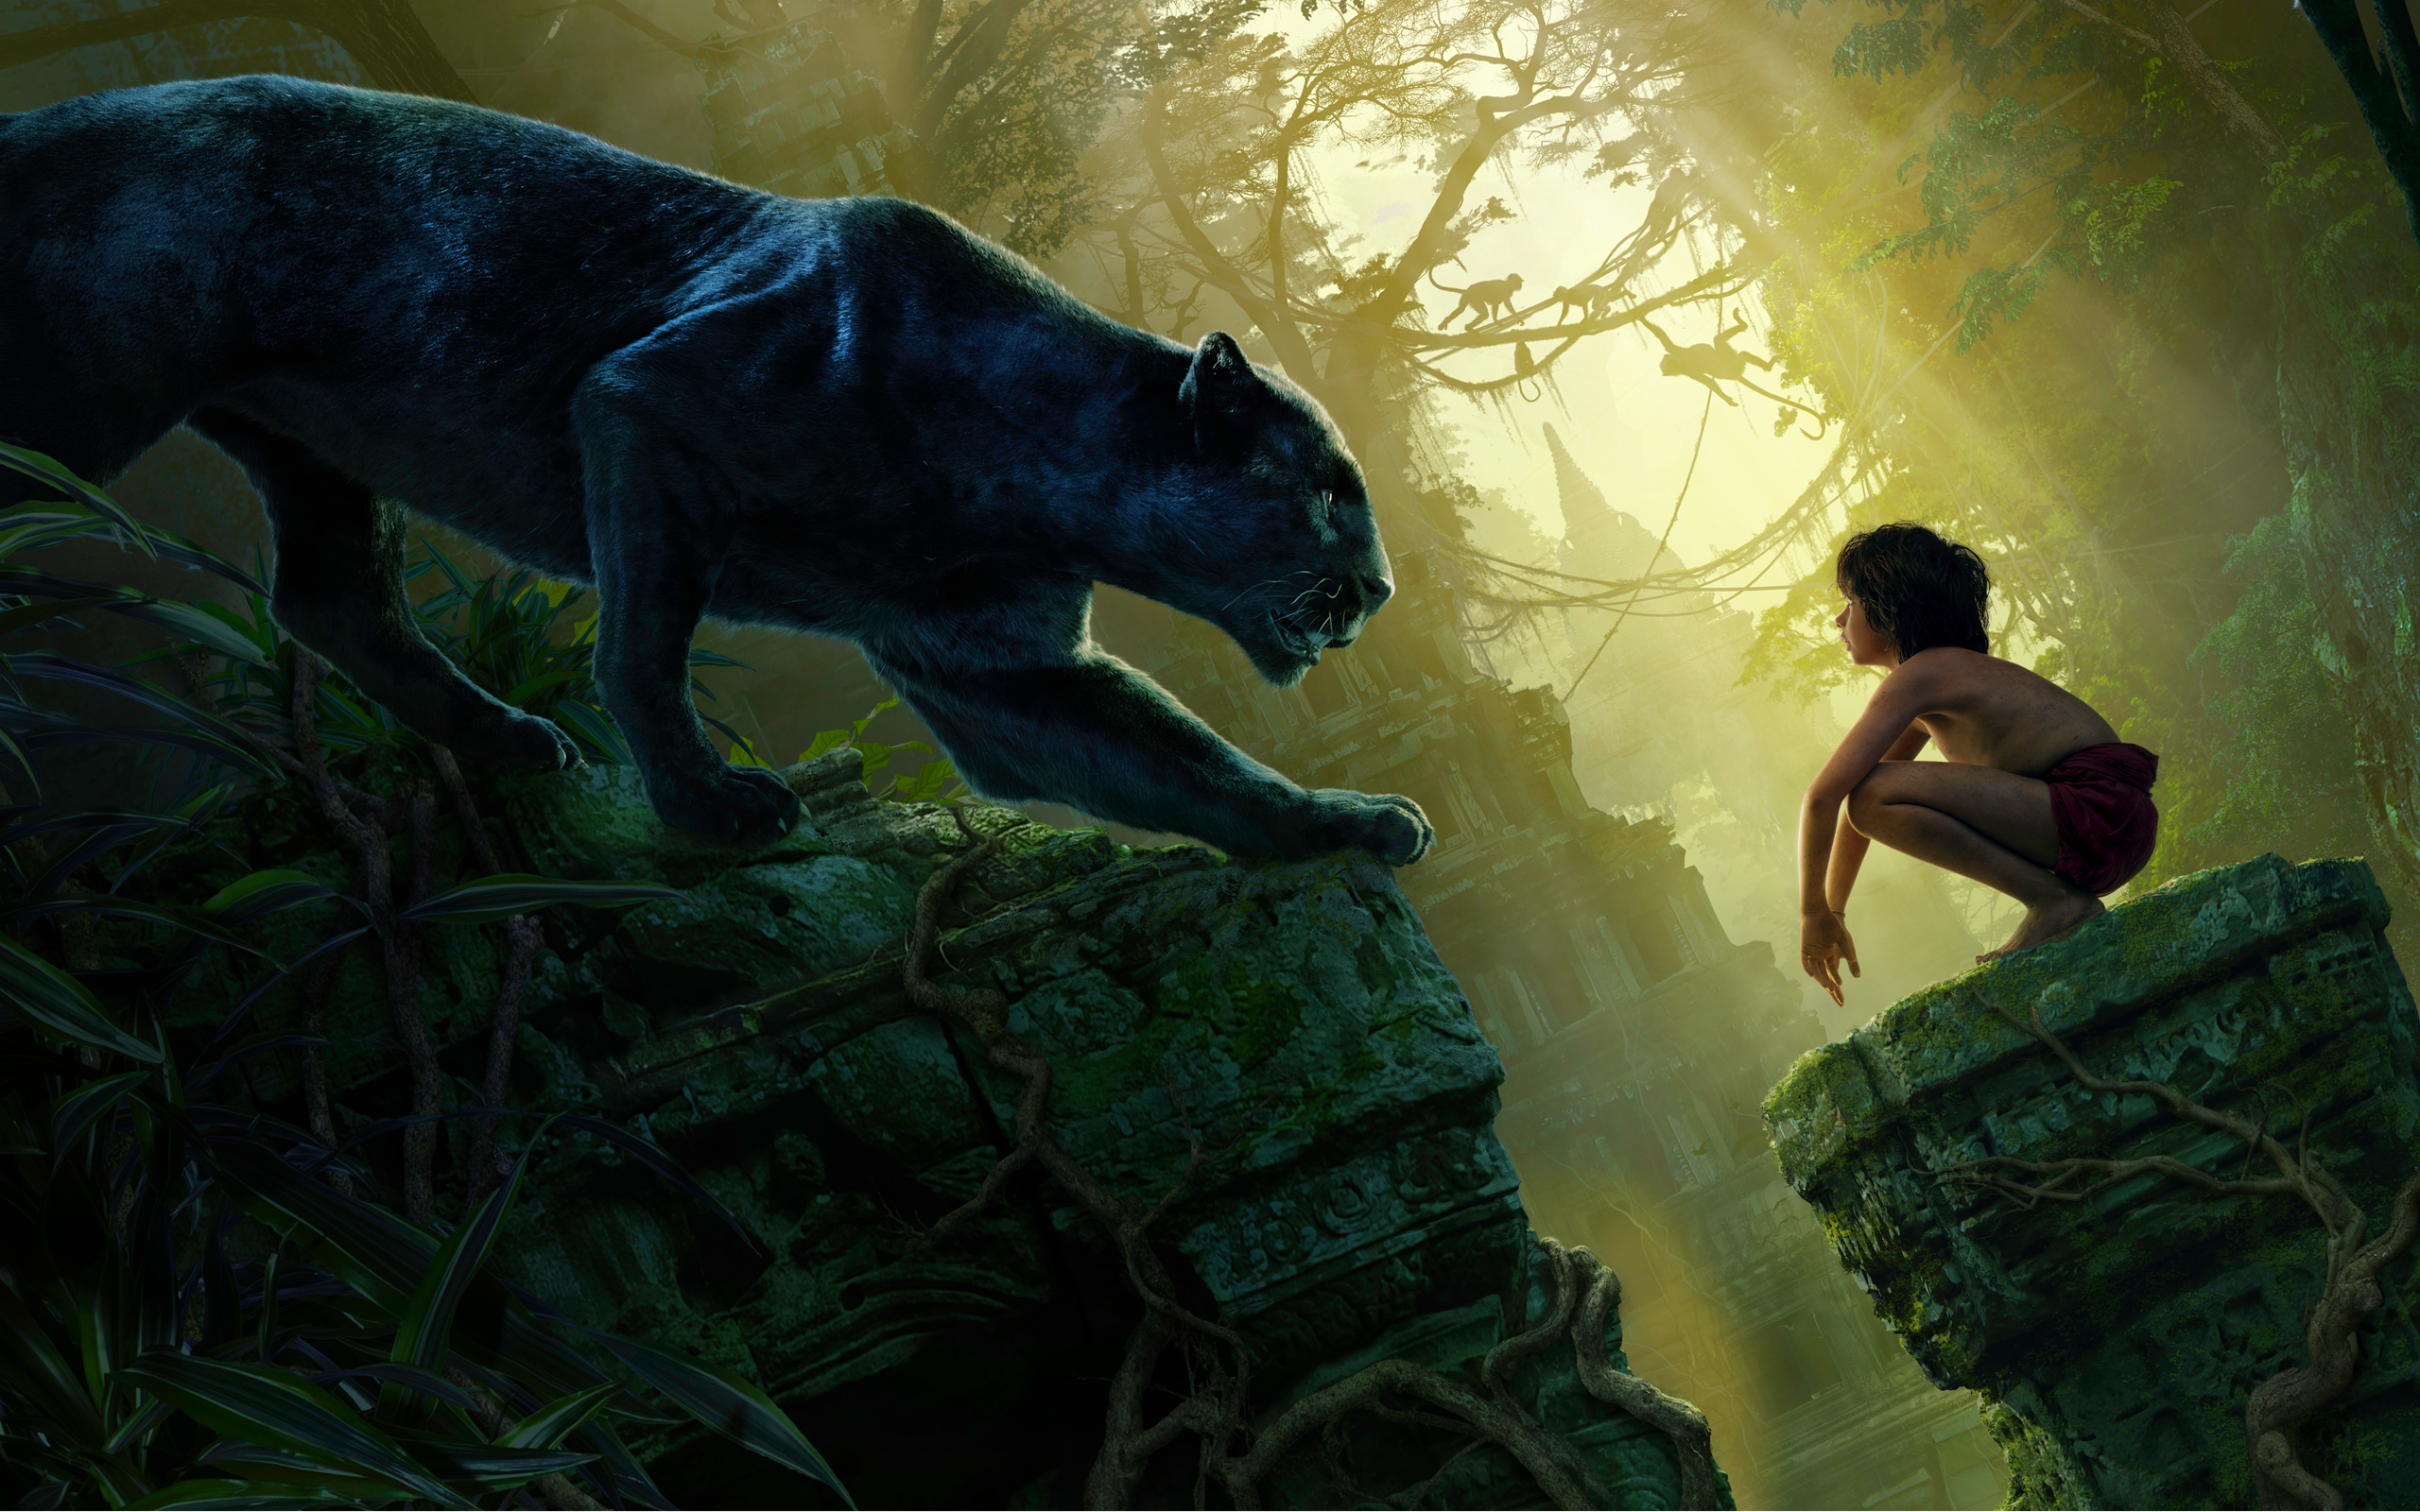 jungle book~ images mowgli bagheera black panther the jungle book